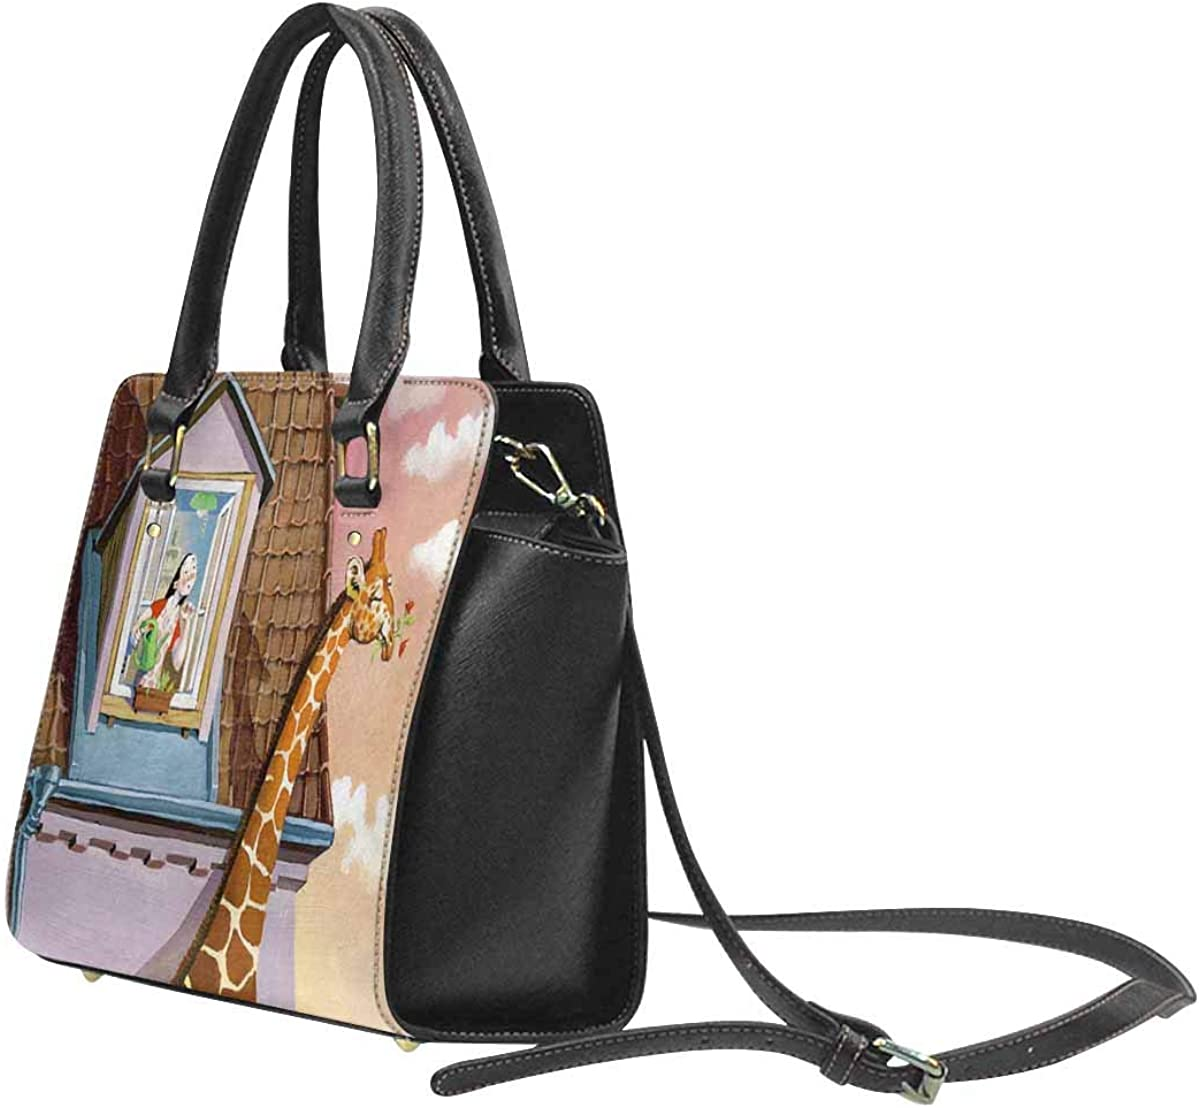 INTERESTPRINT Banner Flyer Or For Halloween Ladies Purse PU Leather Shoulder Bags Satchel Bags